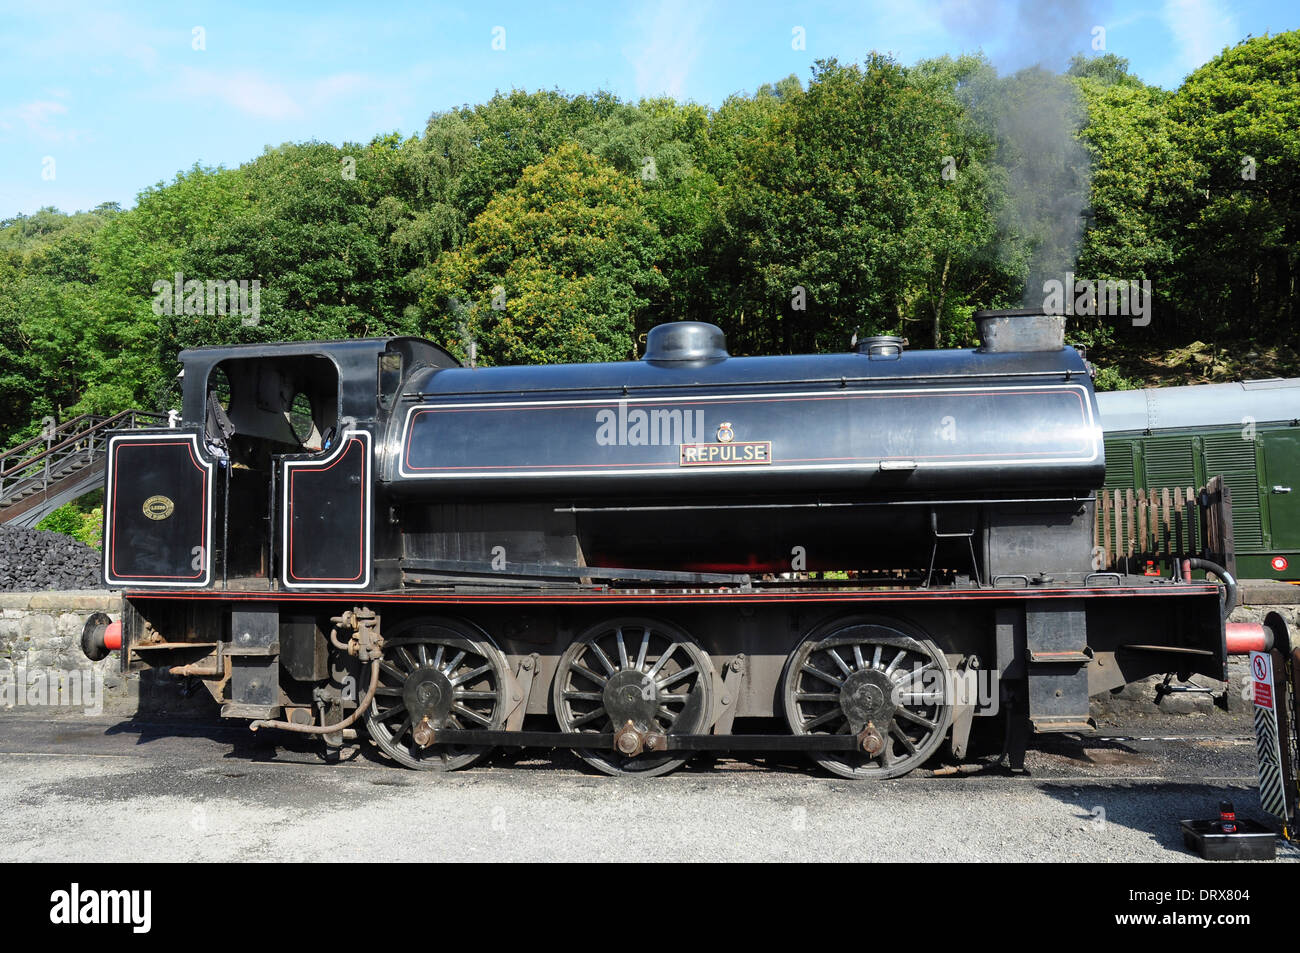 Saddle tank 'Repulse' with Giesl oblong ejector and chimney on the Lakeside & Haverthwaite Railway, Cumbria, England, UK - Stock Image